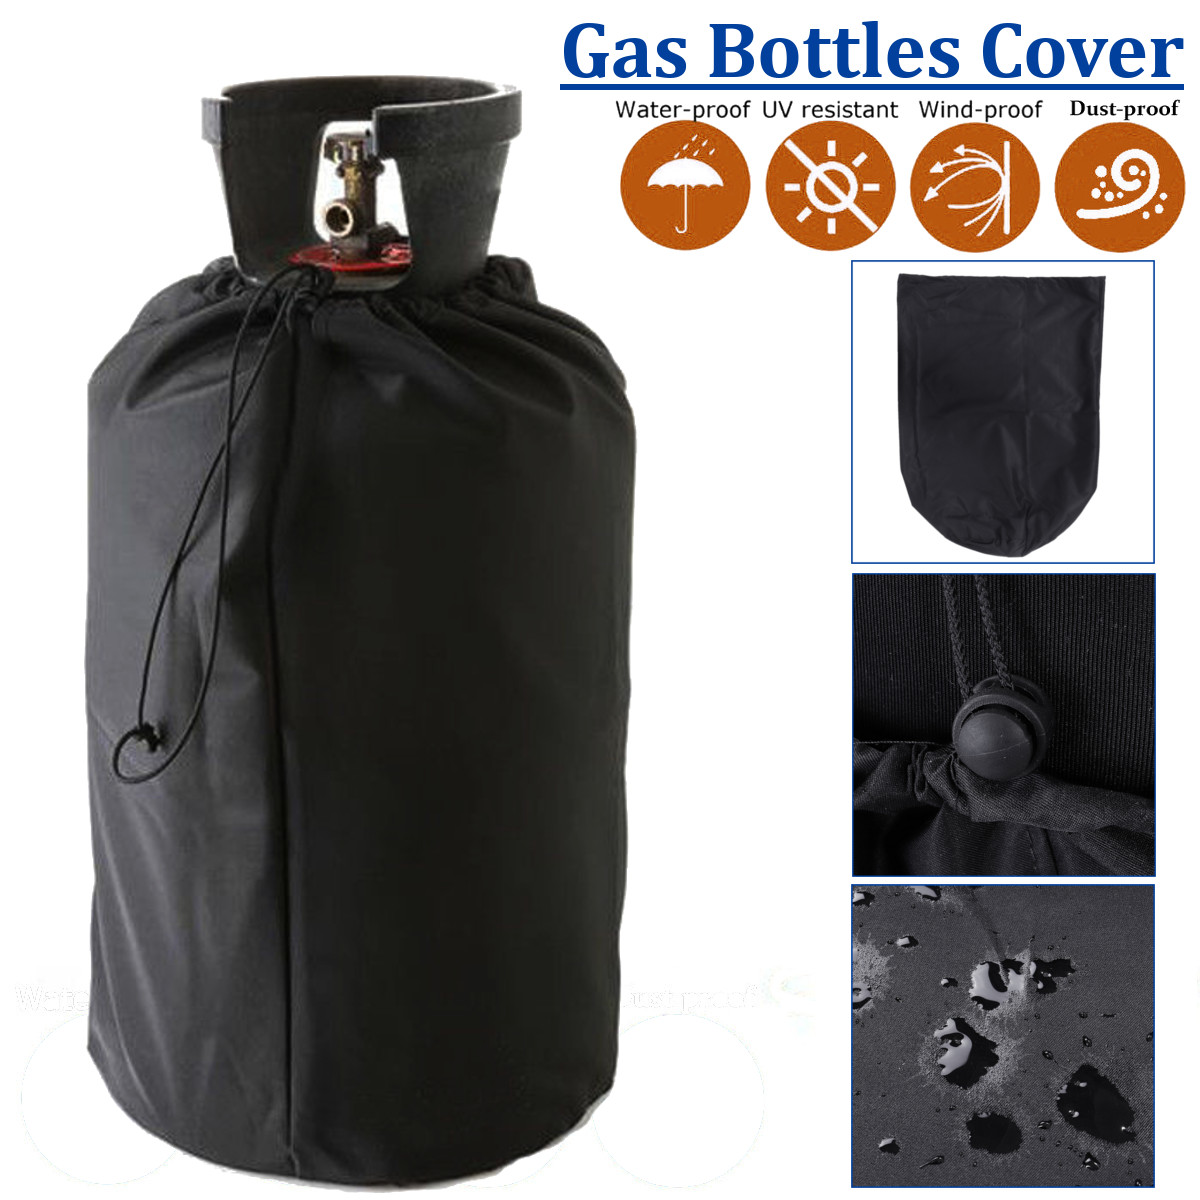 PVC Waterproof BBQ Grill Gas Bottles Cover Protection Durable Outdoor Rain Grill Anti Dust Protector All-Purpose CoversPVC Waterproof BBQ Grill Gas Bottles Cover Protection Durable Outdoor Rain Grill Anti Dust Protector All-Purpose Covers